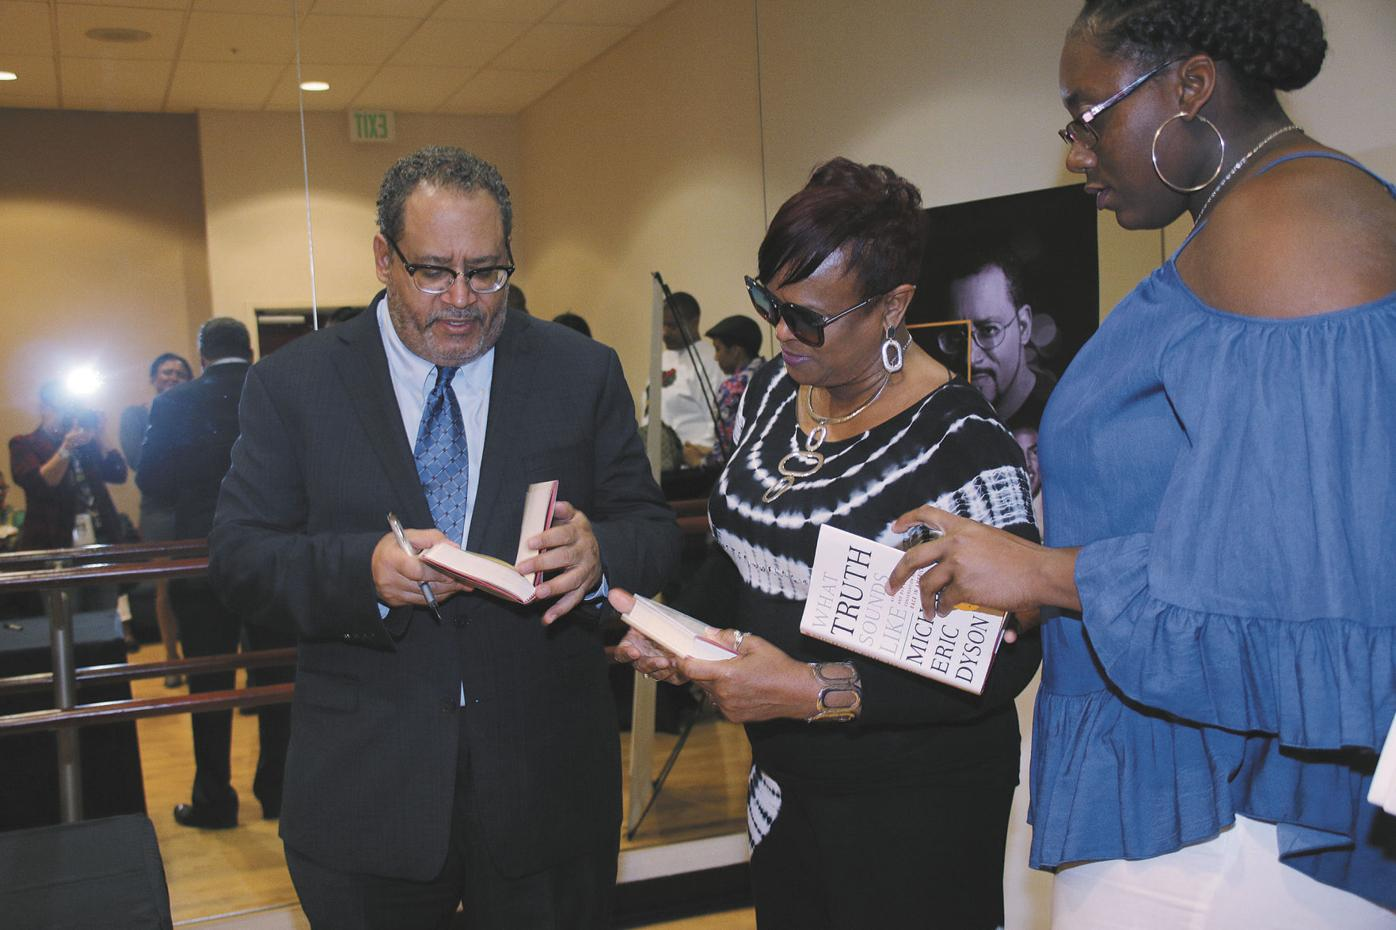 Dozens of South Floridians flocked to the Miramar Cultural Center for a book signing and discussion with author Michael Eric Dyson.